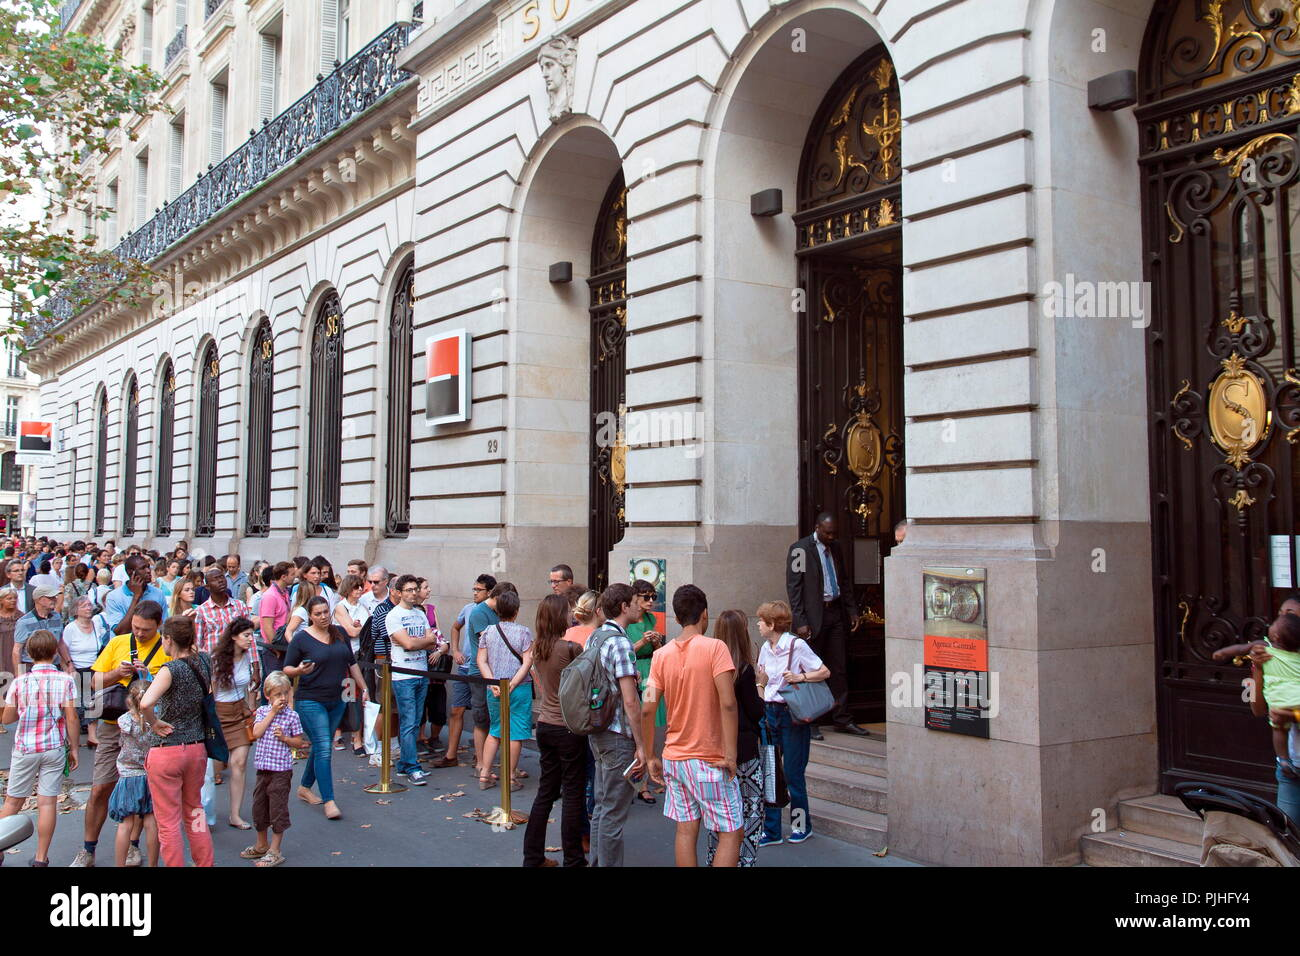 France, Paris,  Haussmann boulevard 9th arrondissement, 2014 European Heritage Days, queing in front of Societe Generale Bank for visiting - Stock Image